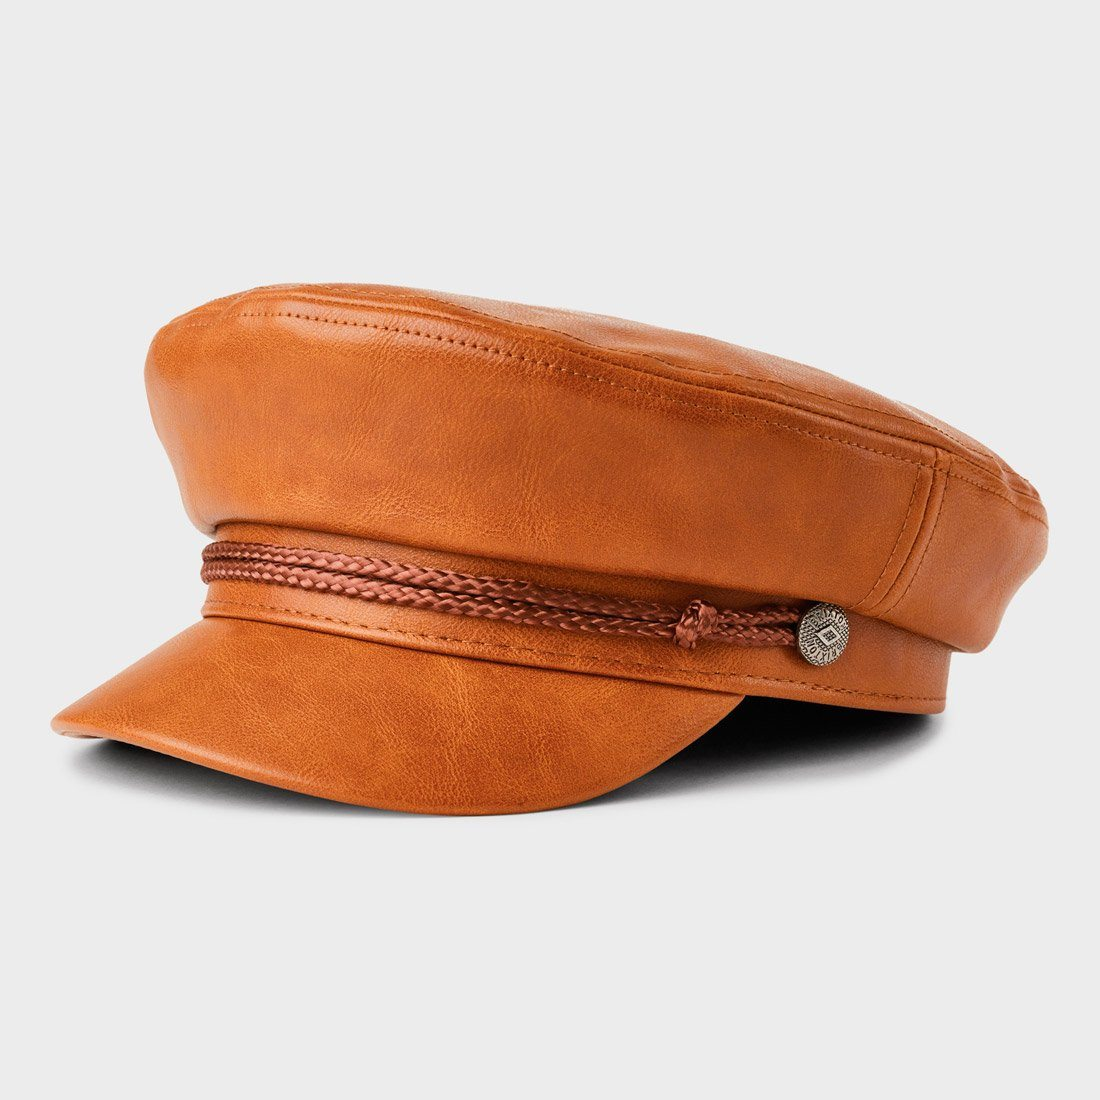 Brixton Fiddler Cap Vegan Leather Tan